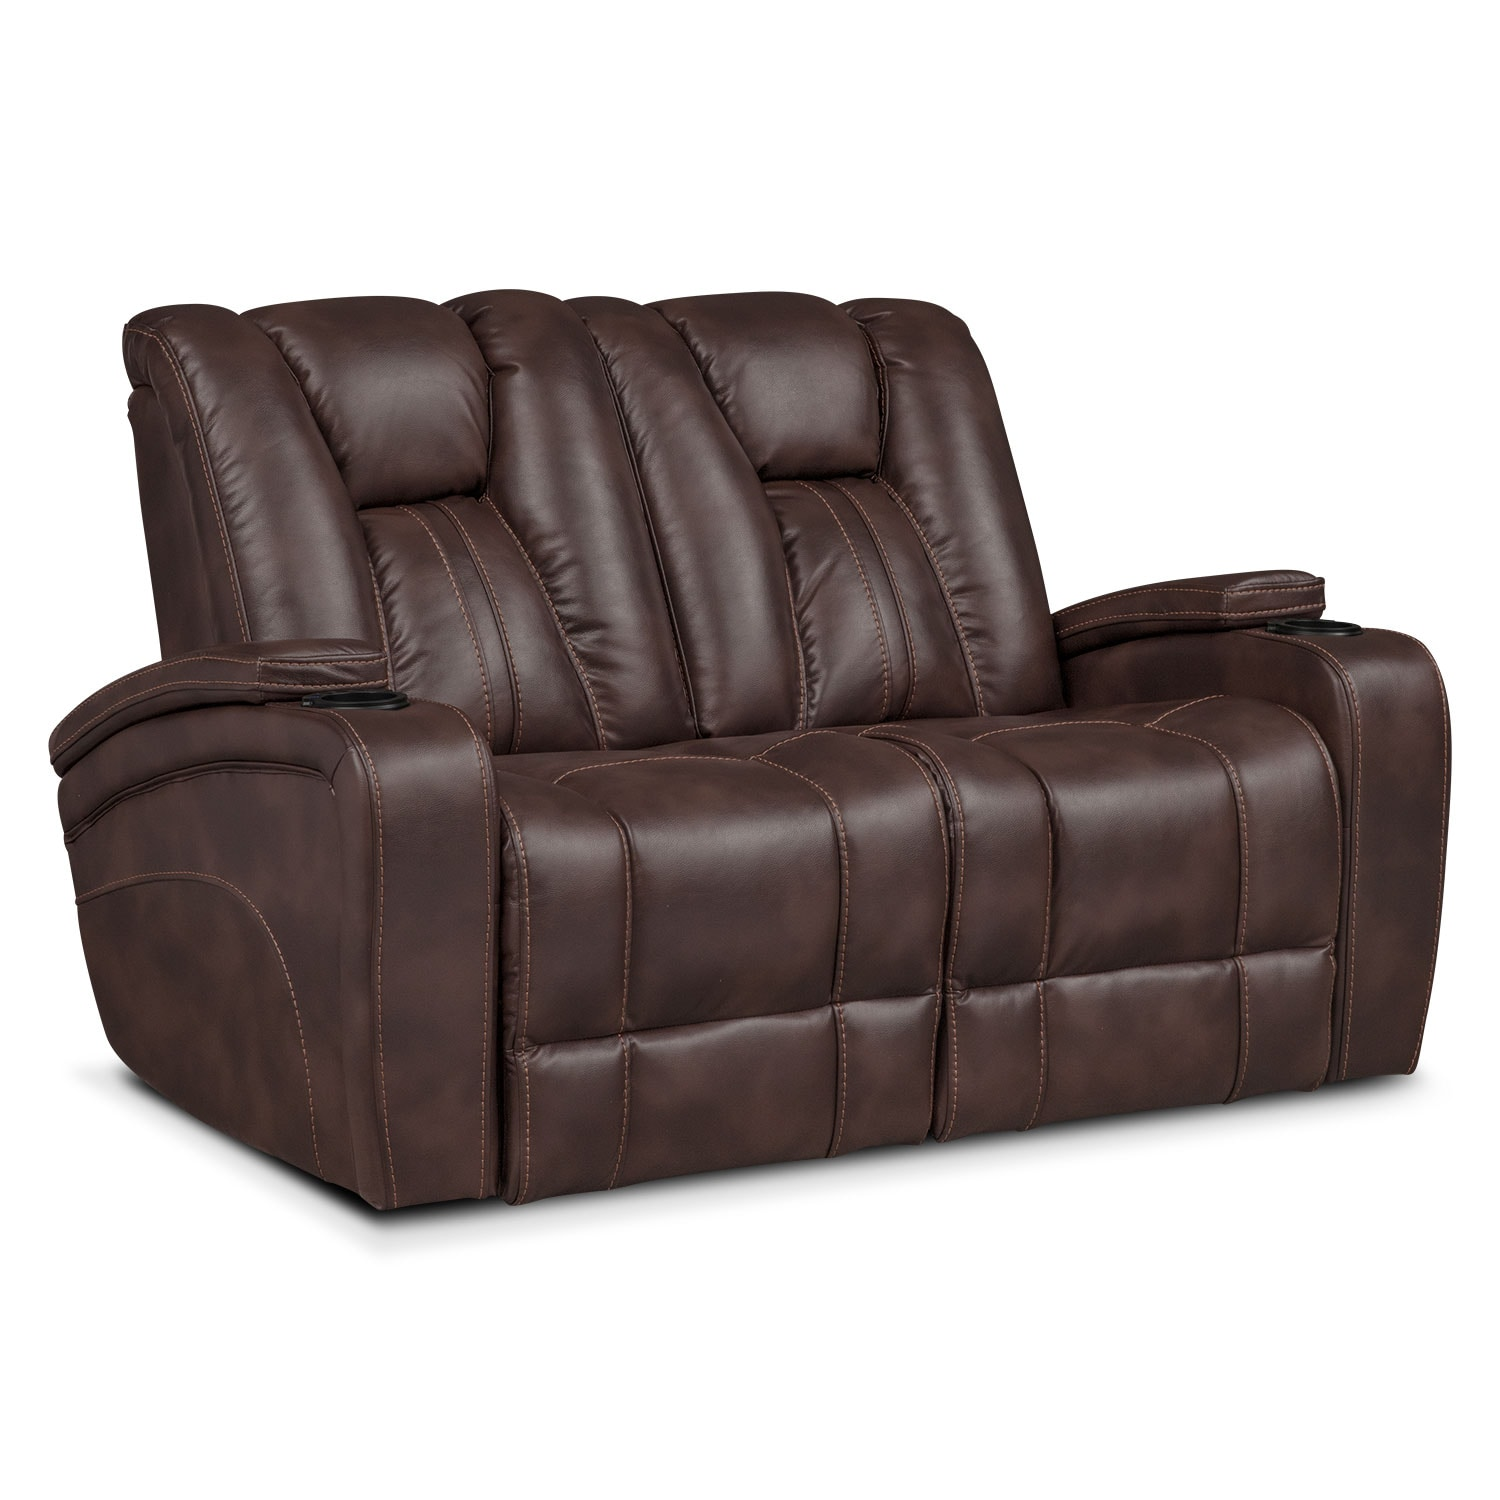 Pulsar Power Reclining Sofa, Power Reclining Loveseat And Power Recliner  Set - Brown By One80